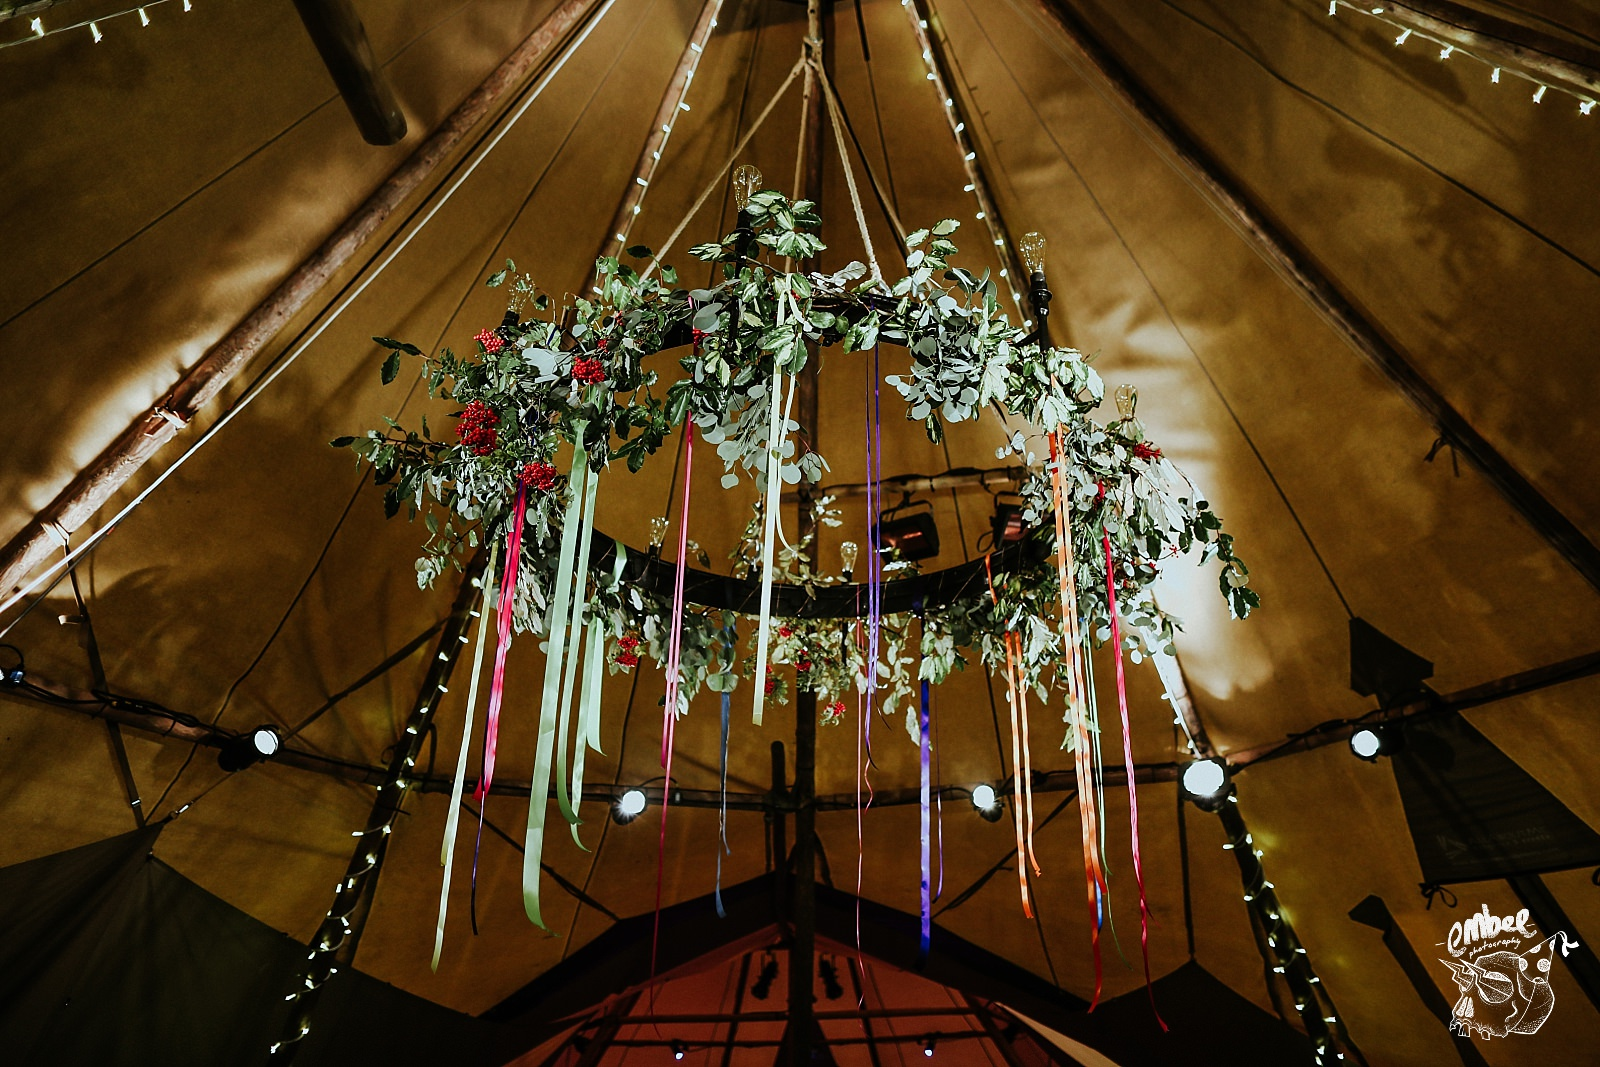 amazing flowers in tipi